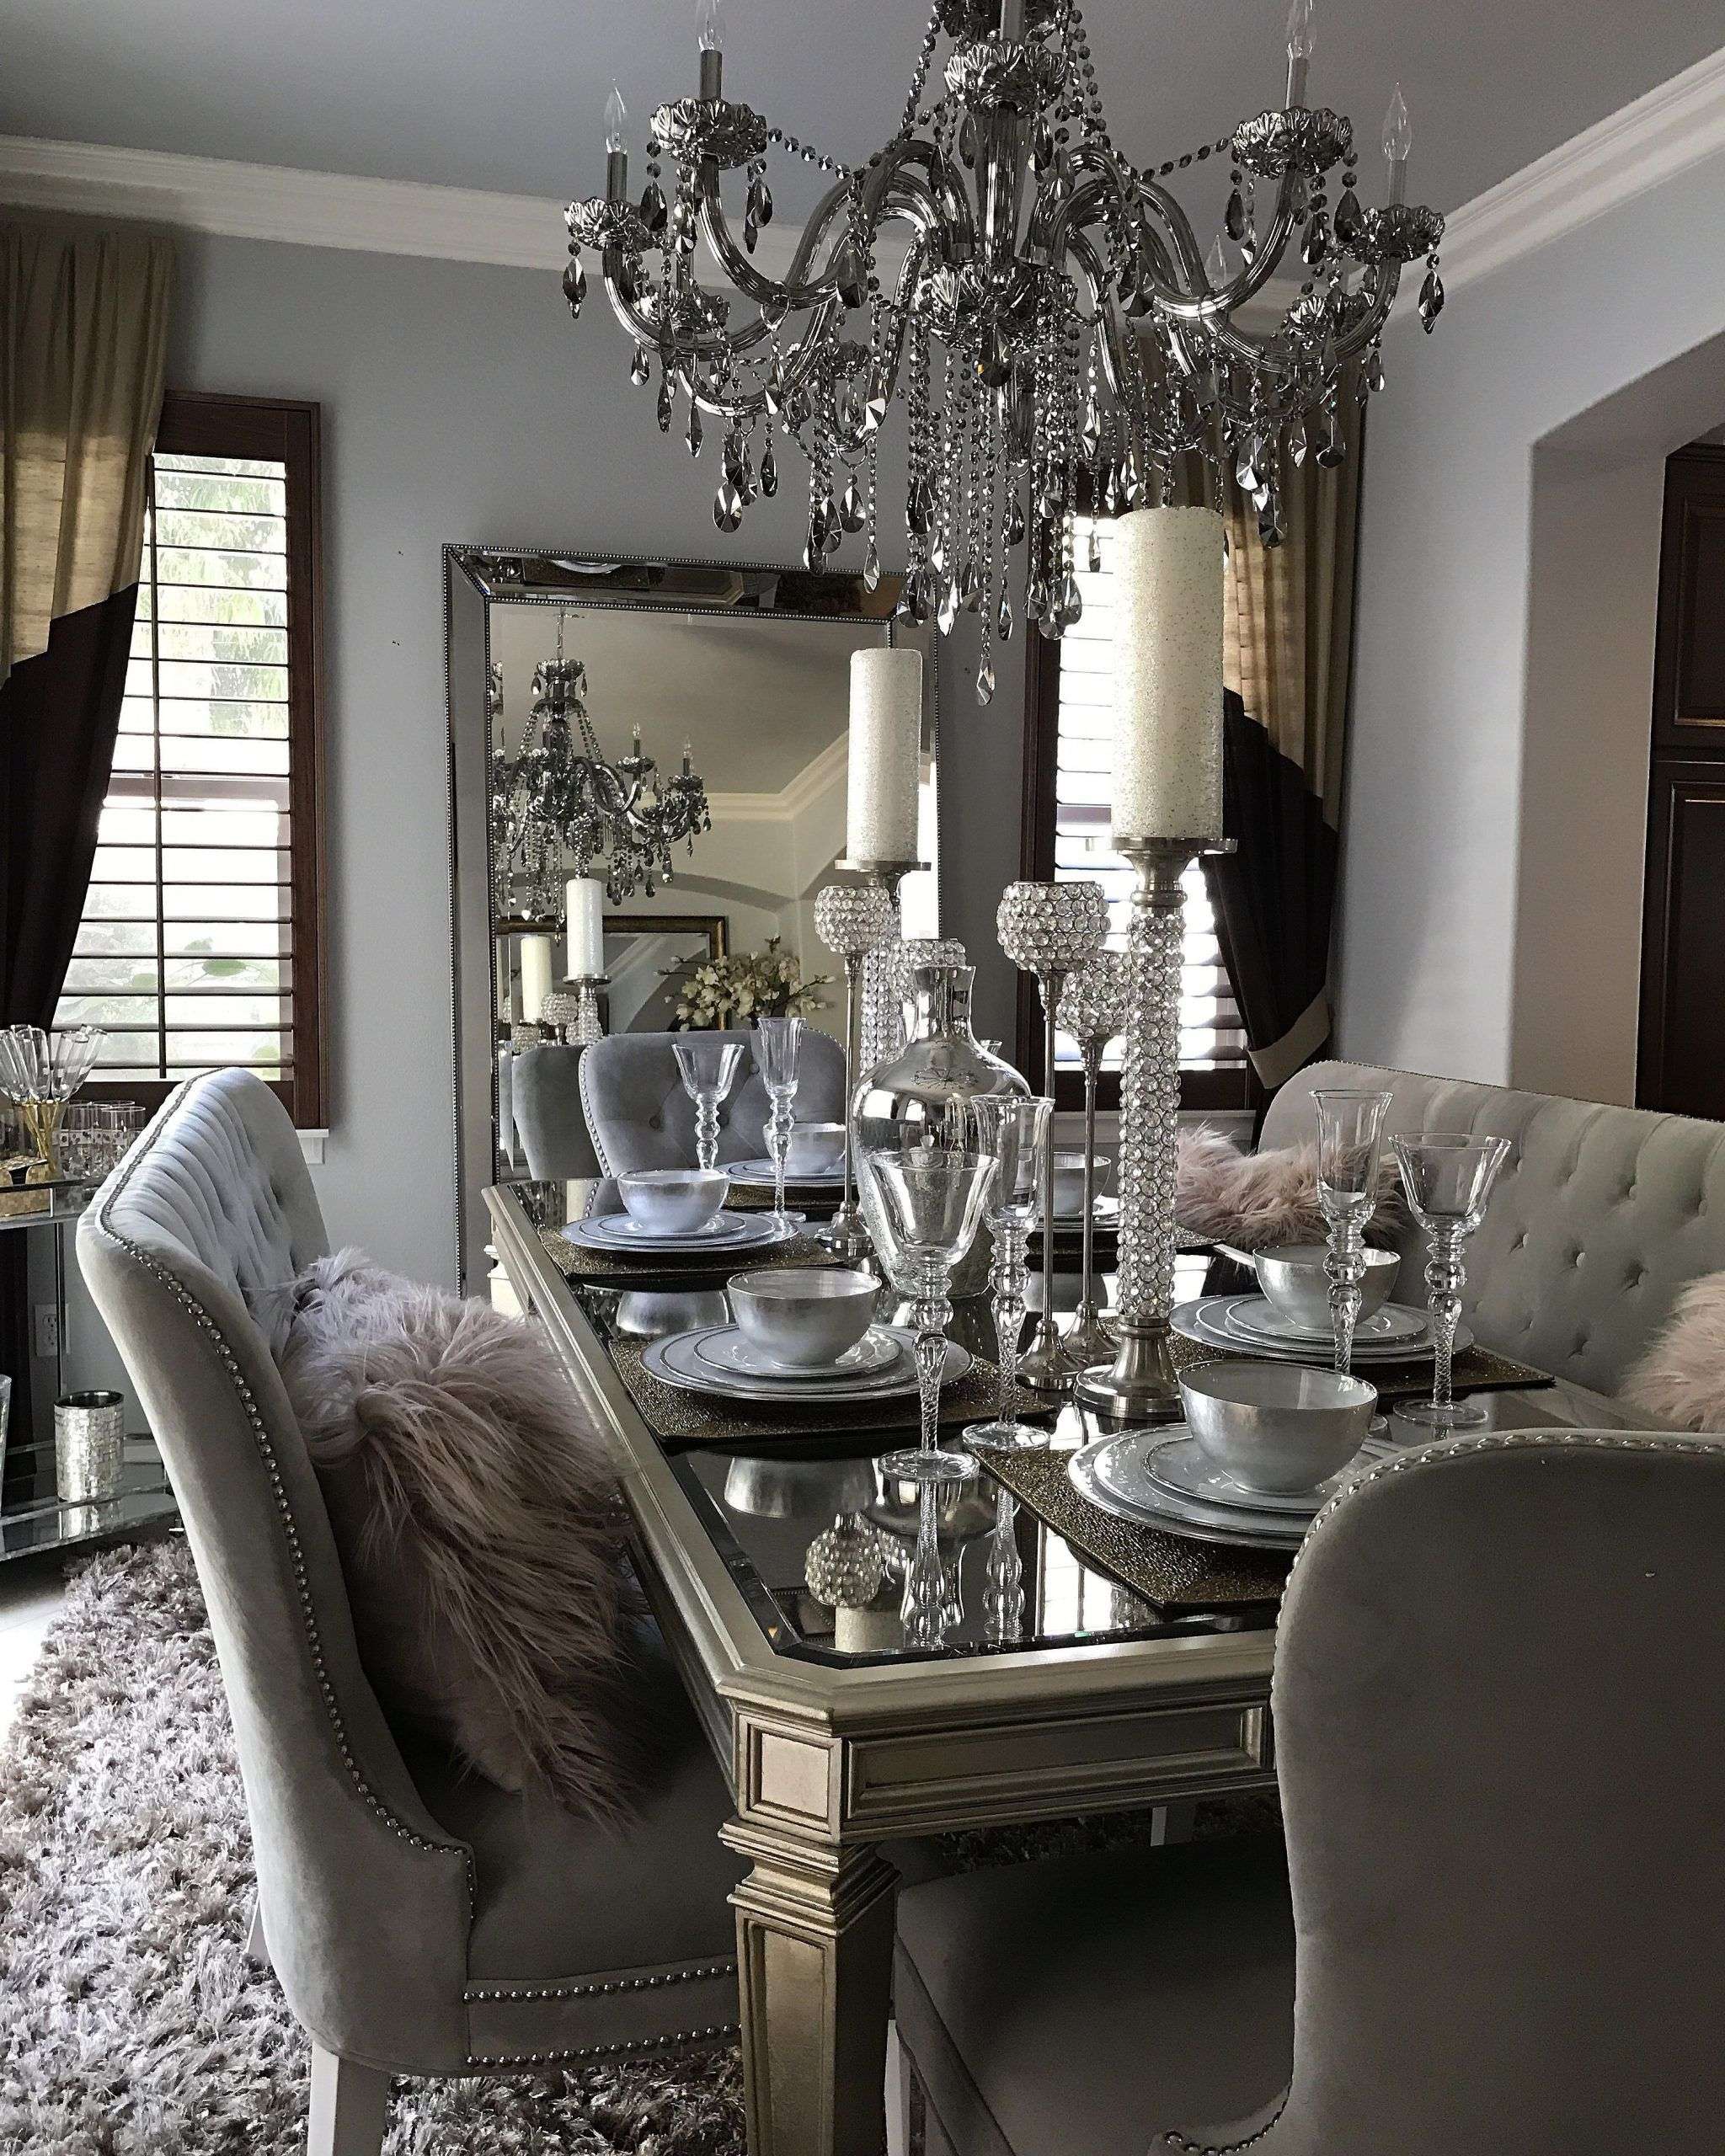 Pin On Dining Room Décor Image Ideas